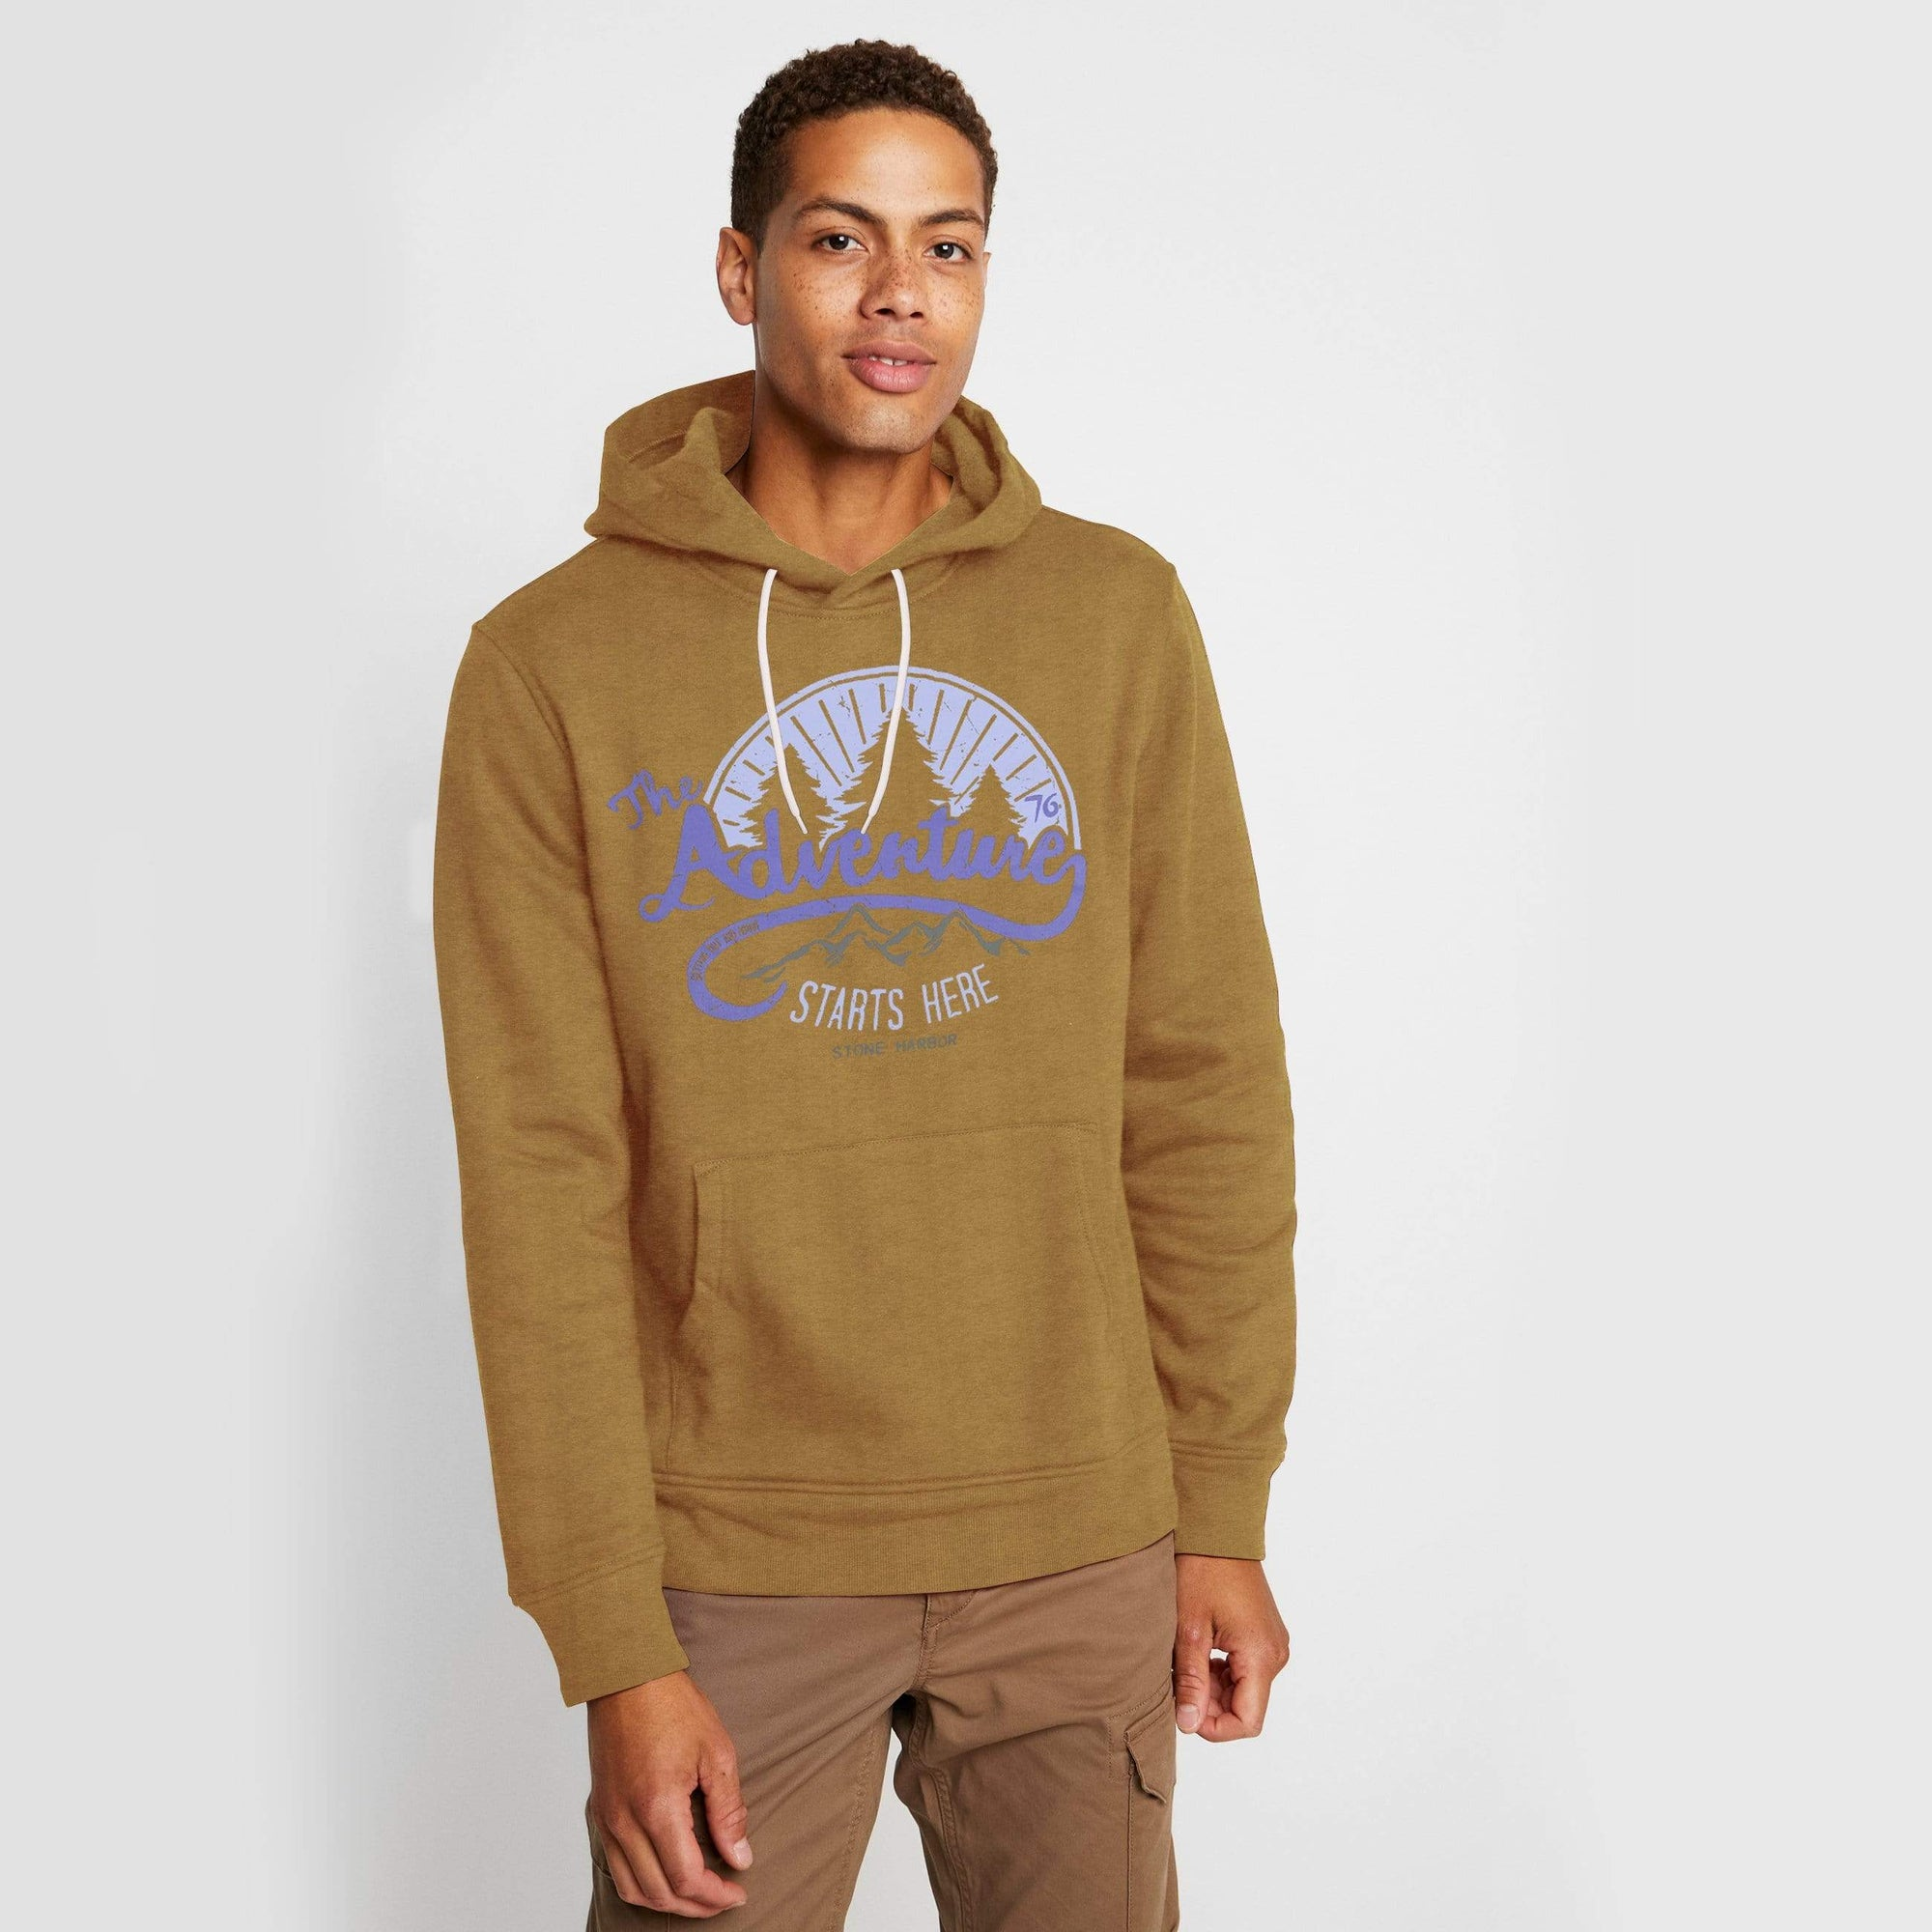 Stone Harbor Men's Hoodies Brown / S Men's Stone Harbor Adventure Starts Pullover Hoodie